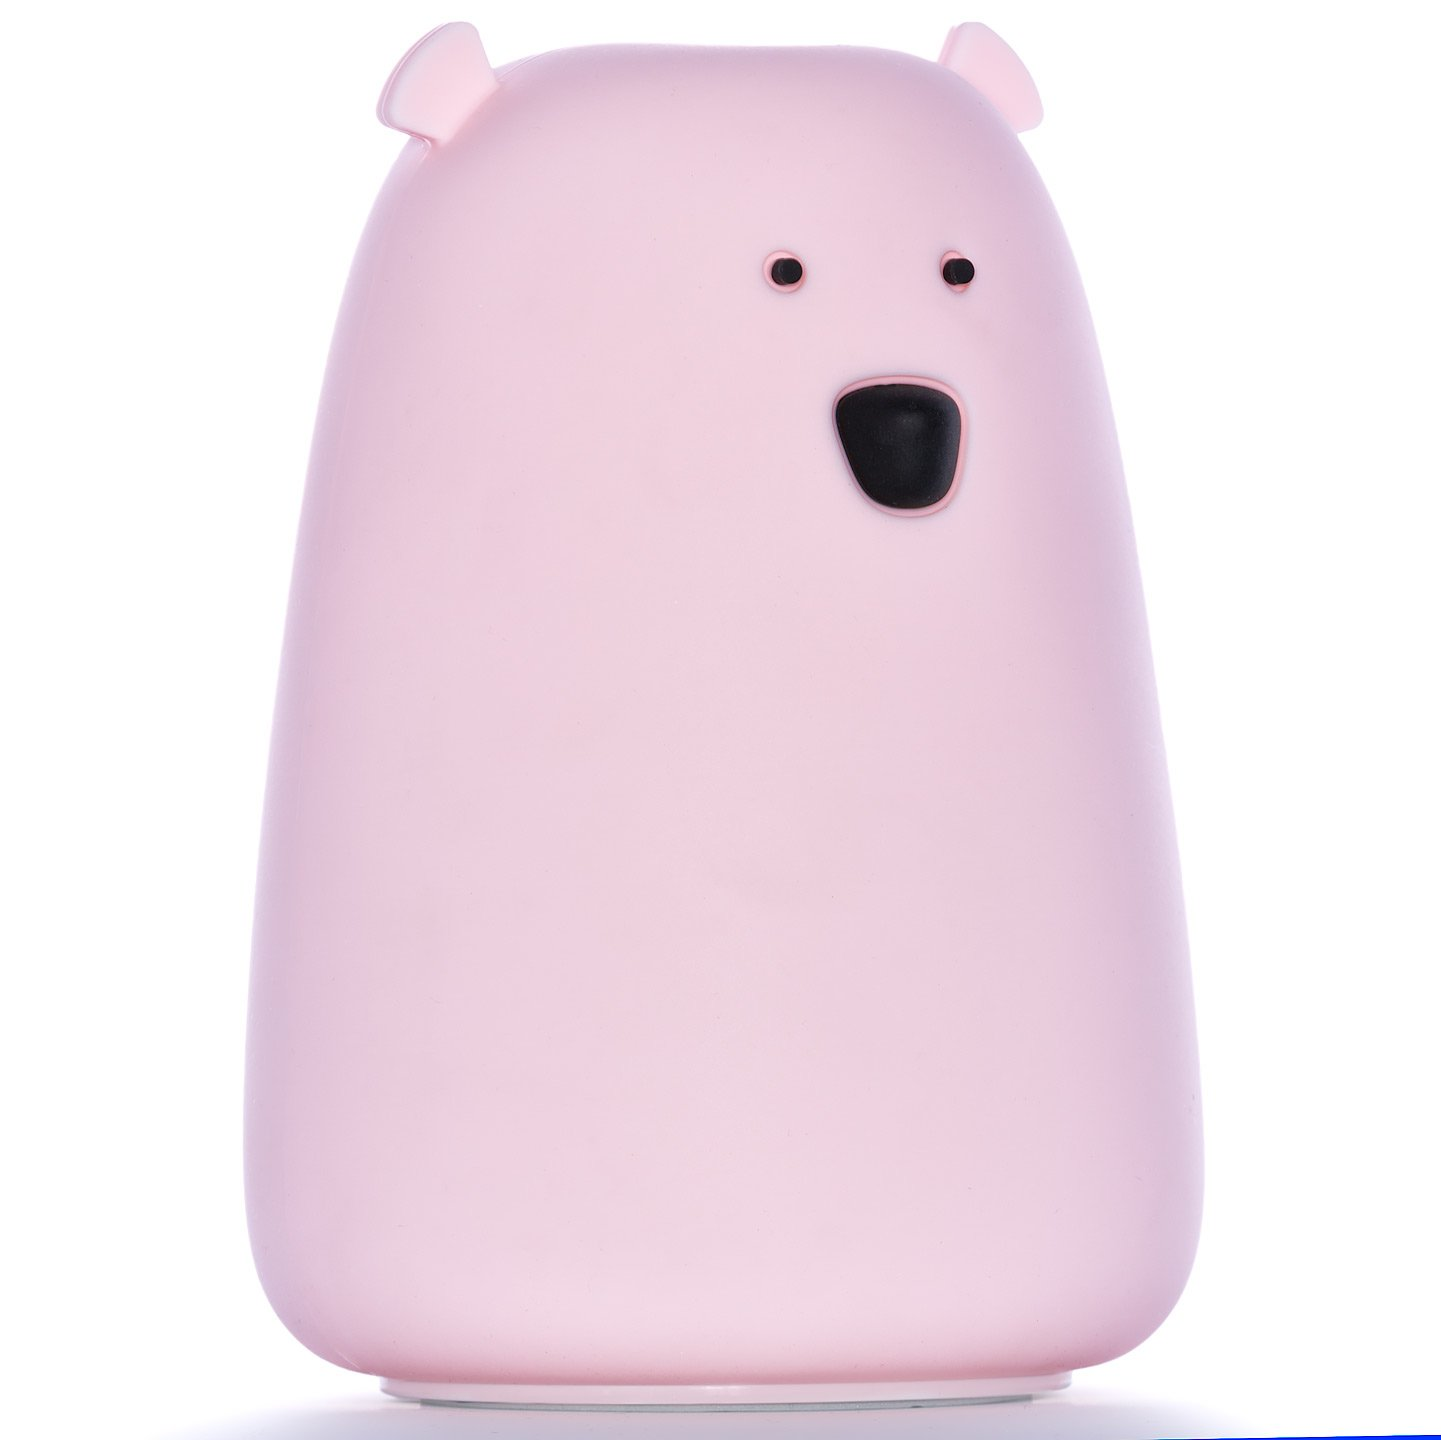 Moogi Color Changing Night Light Kids - Baby Night Light Bear Lamp, Rechargeable LED Nightlight, Soft Silicone Pink Night Light